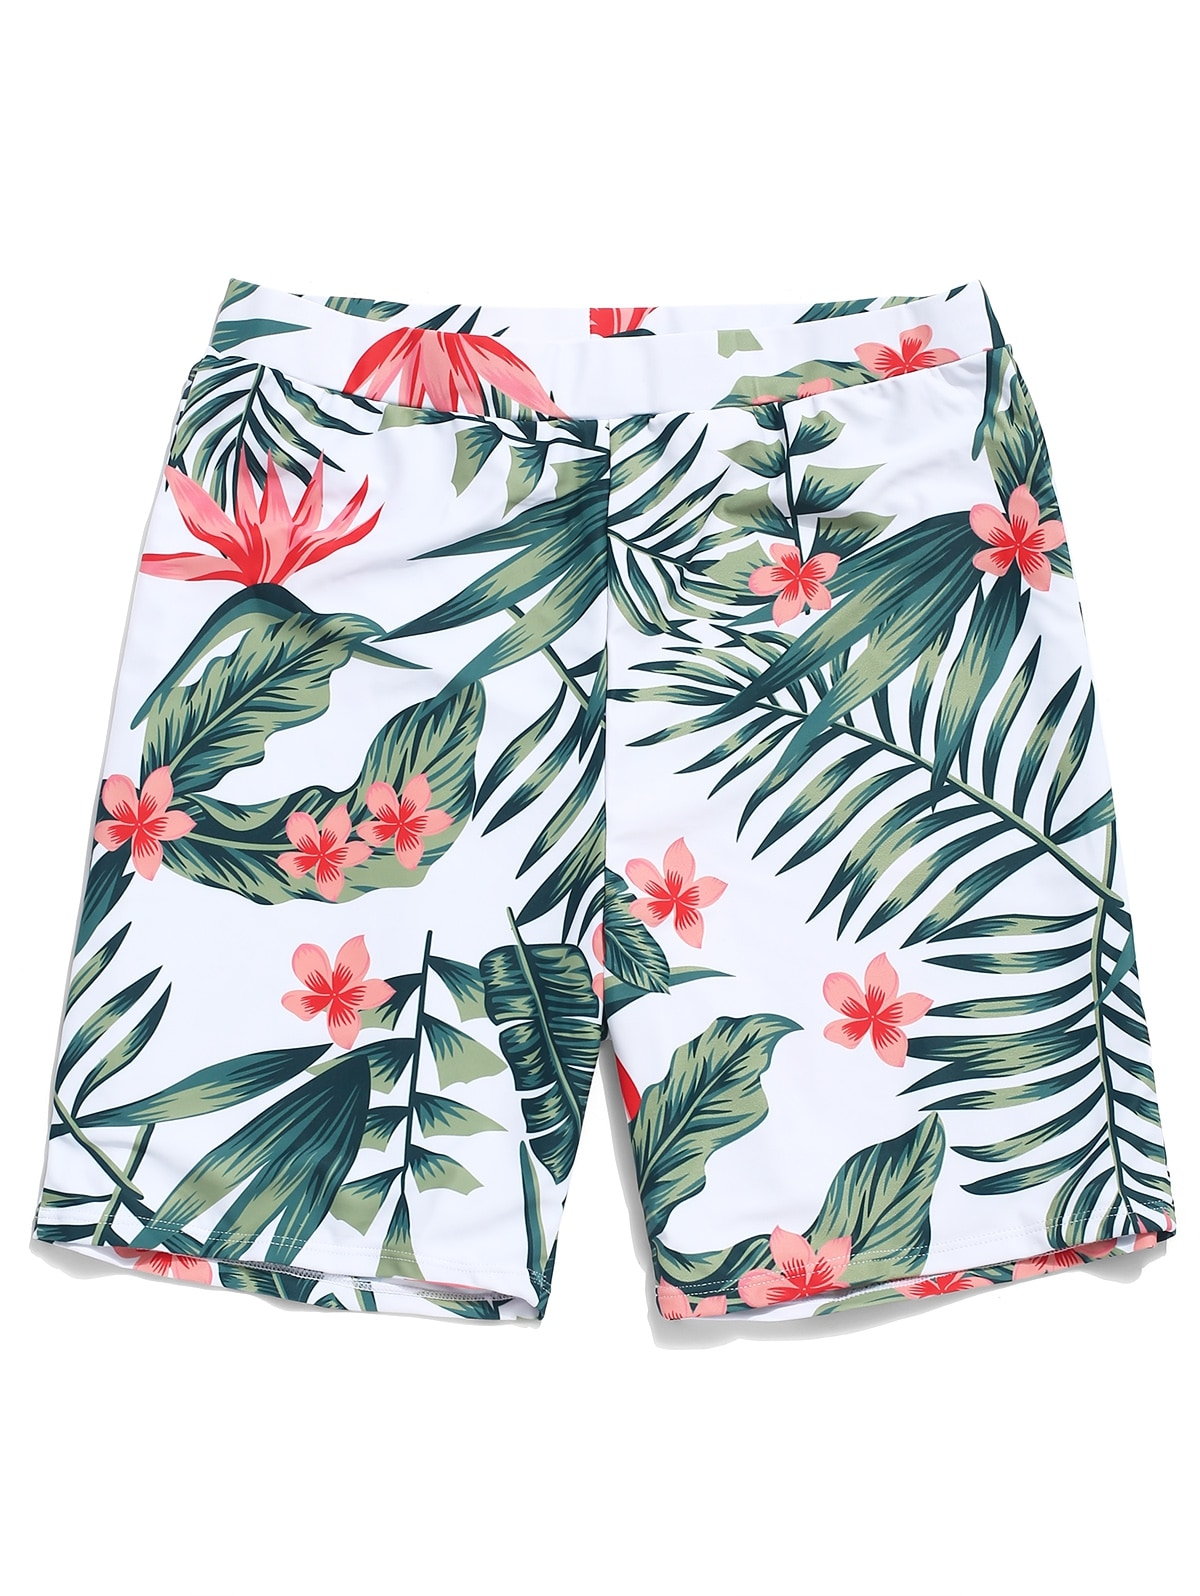 Tropical Leaf Flower Print Beach Shorts